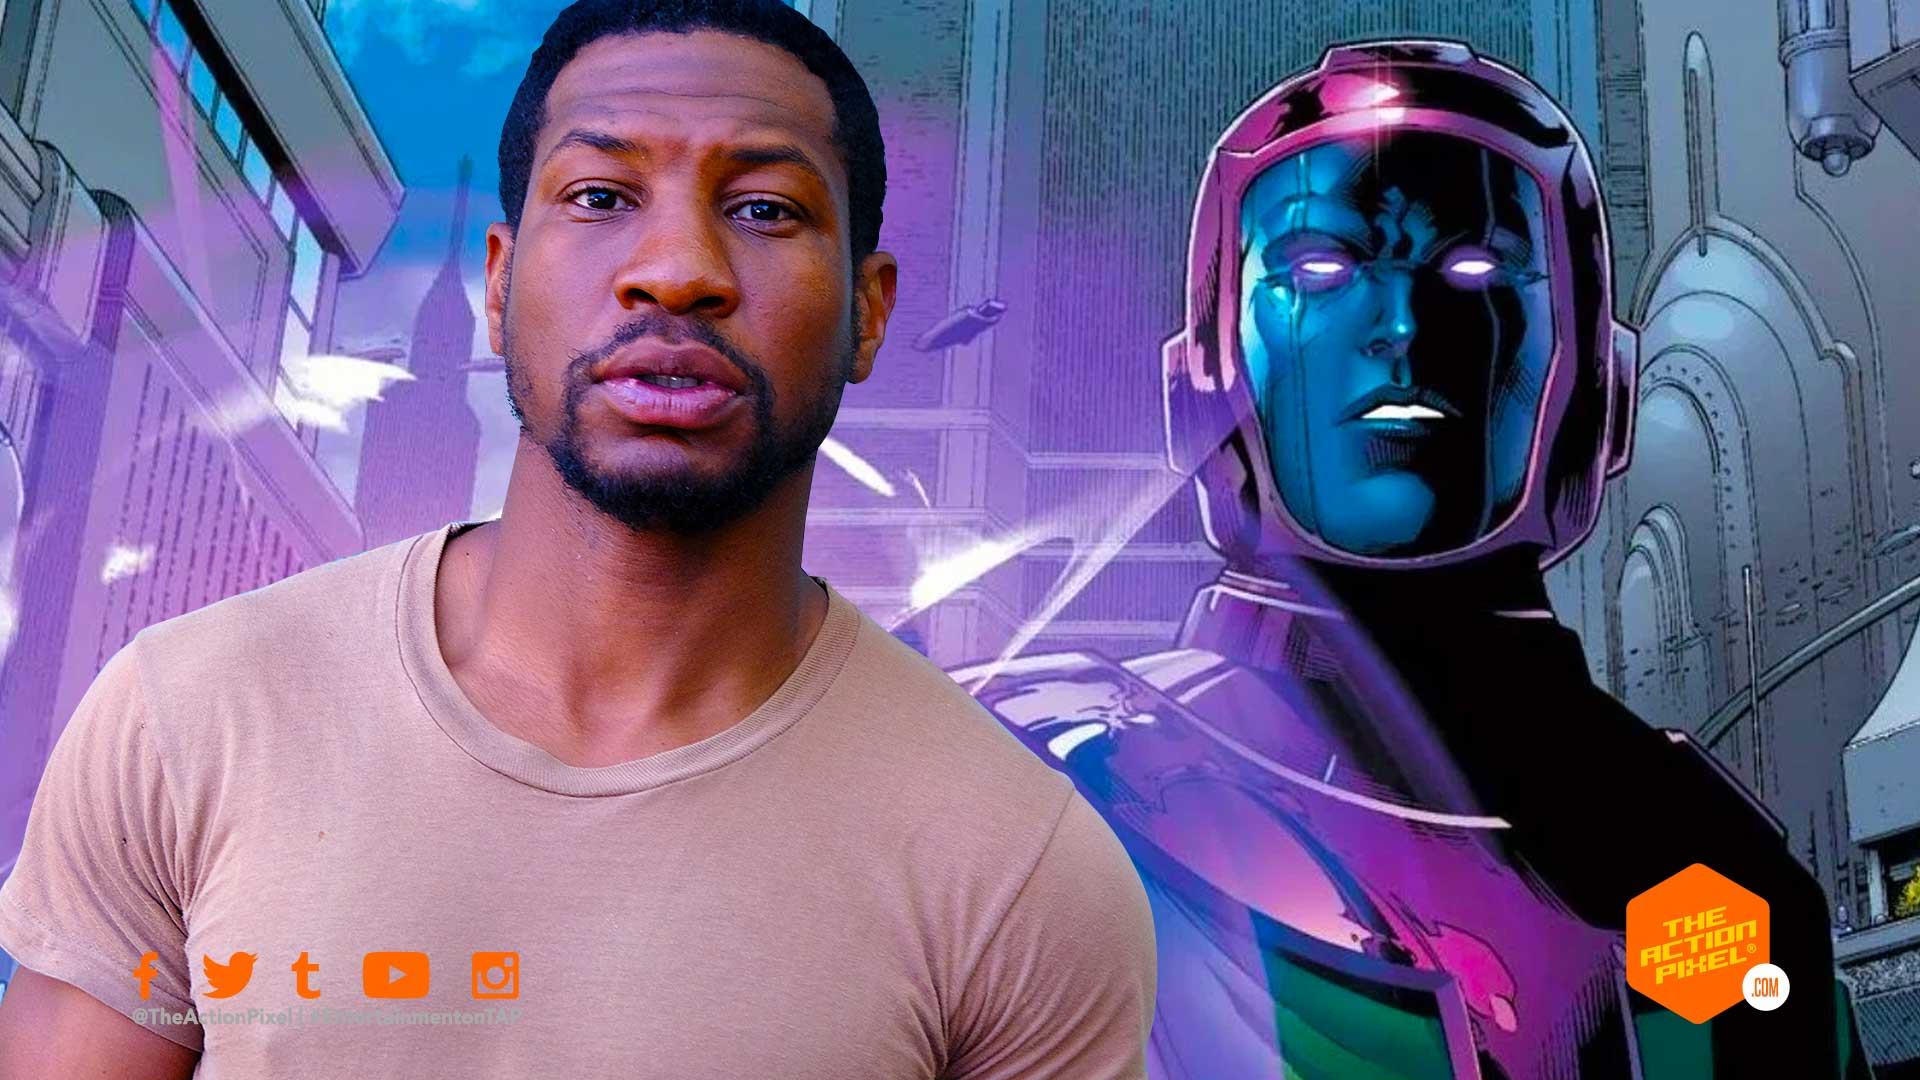 ant-man, kang, kang the conqueror,ant-man 3, antman 3, jonathan majors, lovecraft country, marvel studios, the action pixel, entertainment on tap, featured, marvel, fantastic four, fantastic 4, nathaniel richards,